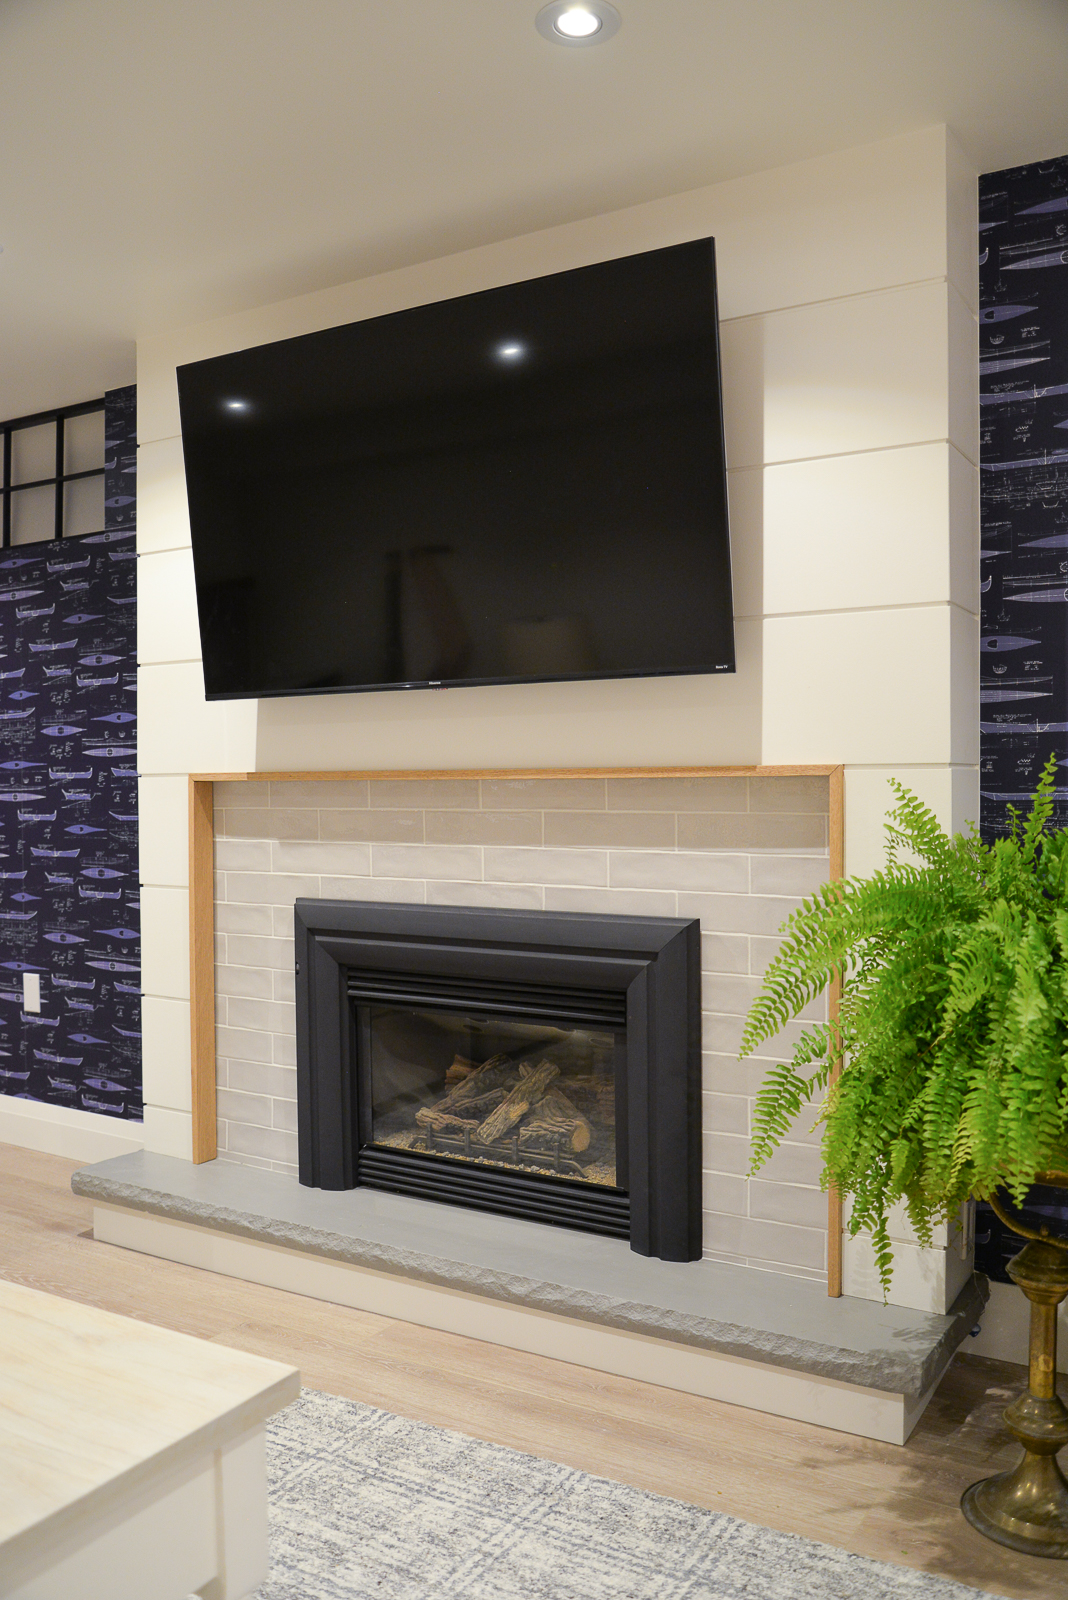 basement tv, hisense roku tv, shiplap fireplace, tile fireplace, fireplace remodel